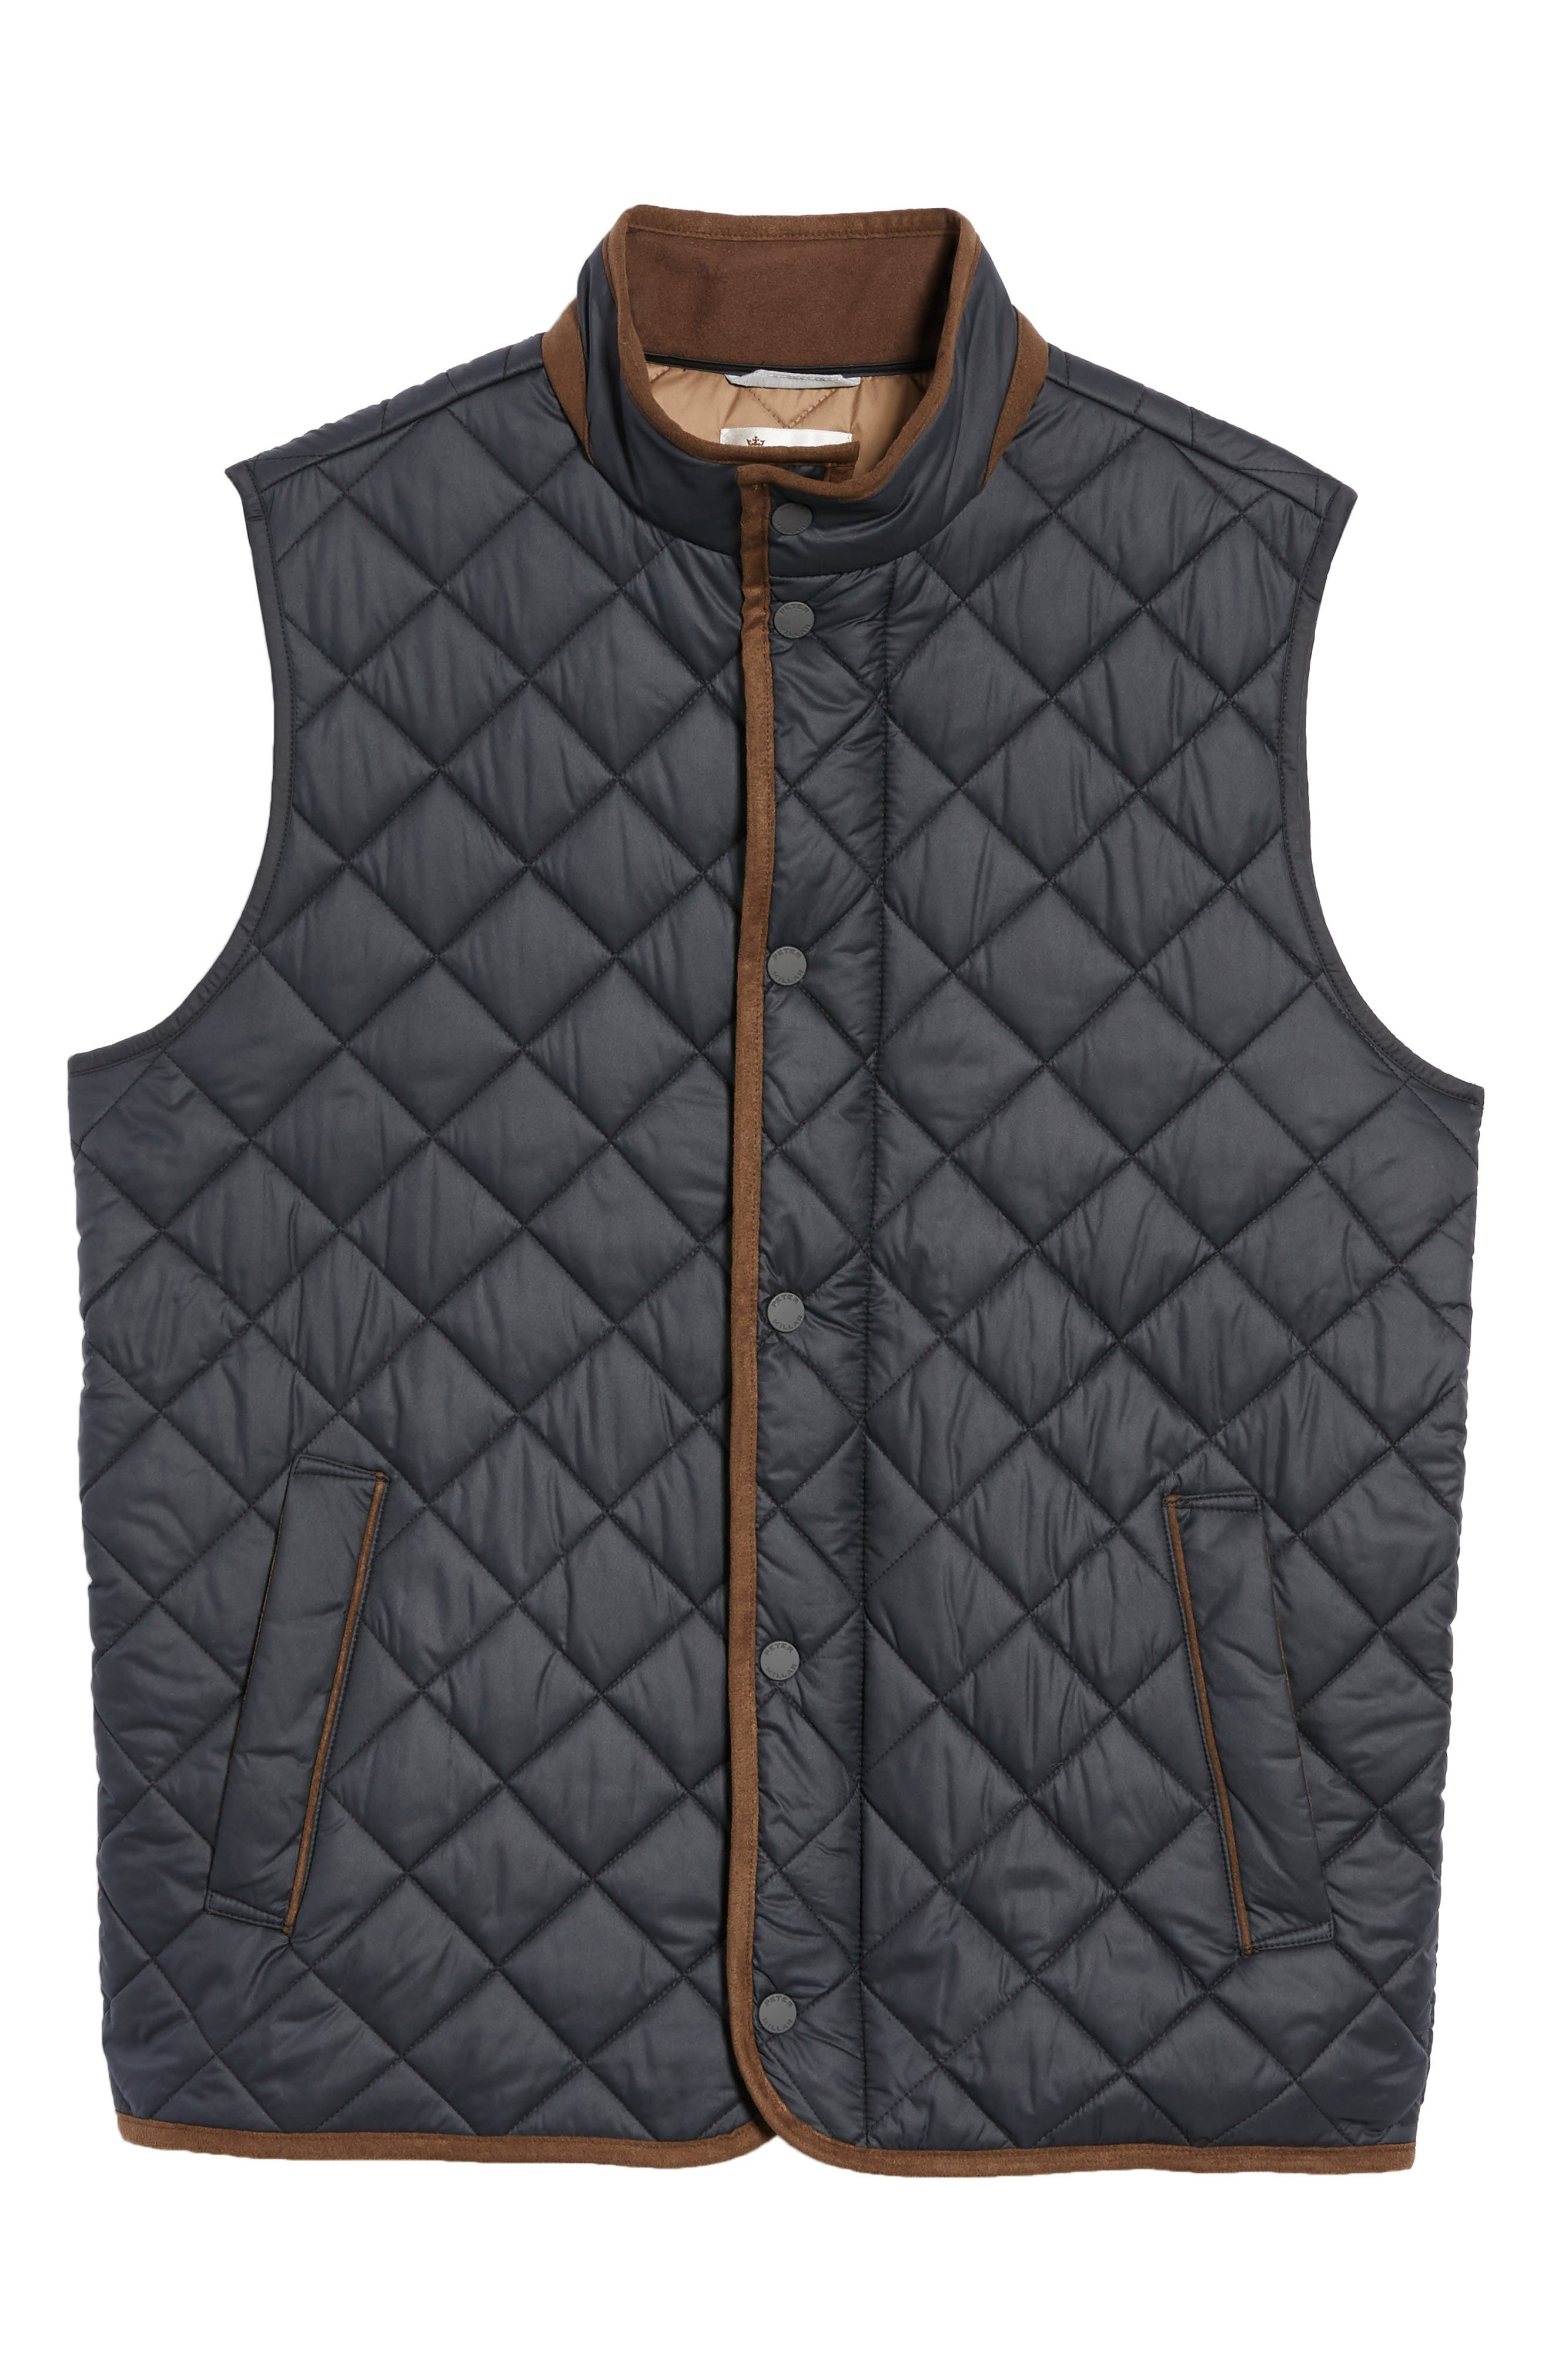 Essex Quilted Vest,                             Alternate thumbnail 6, color,                             001